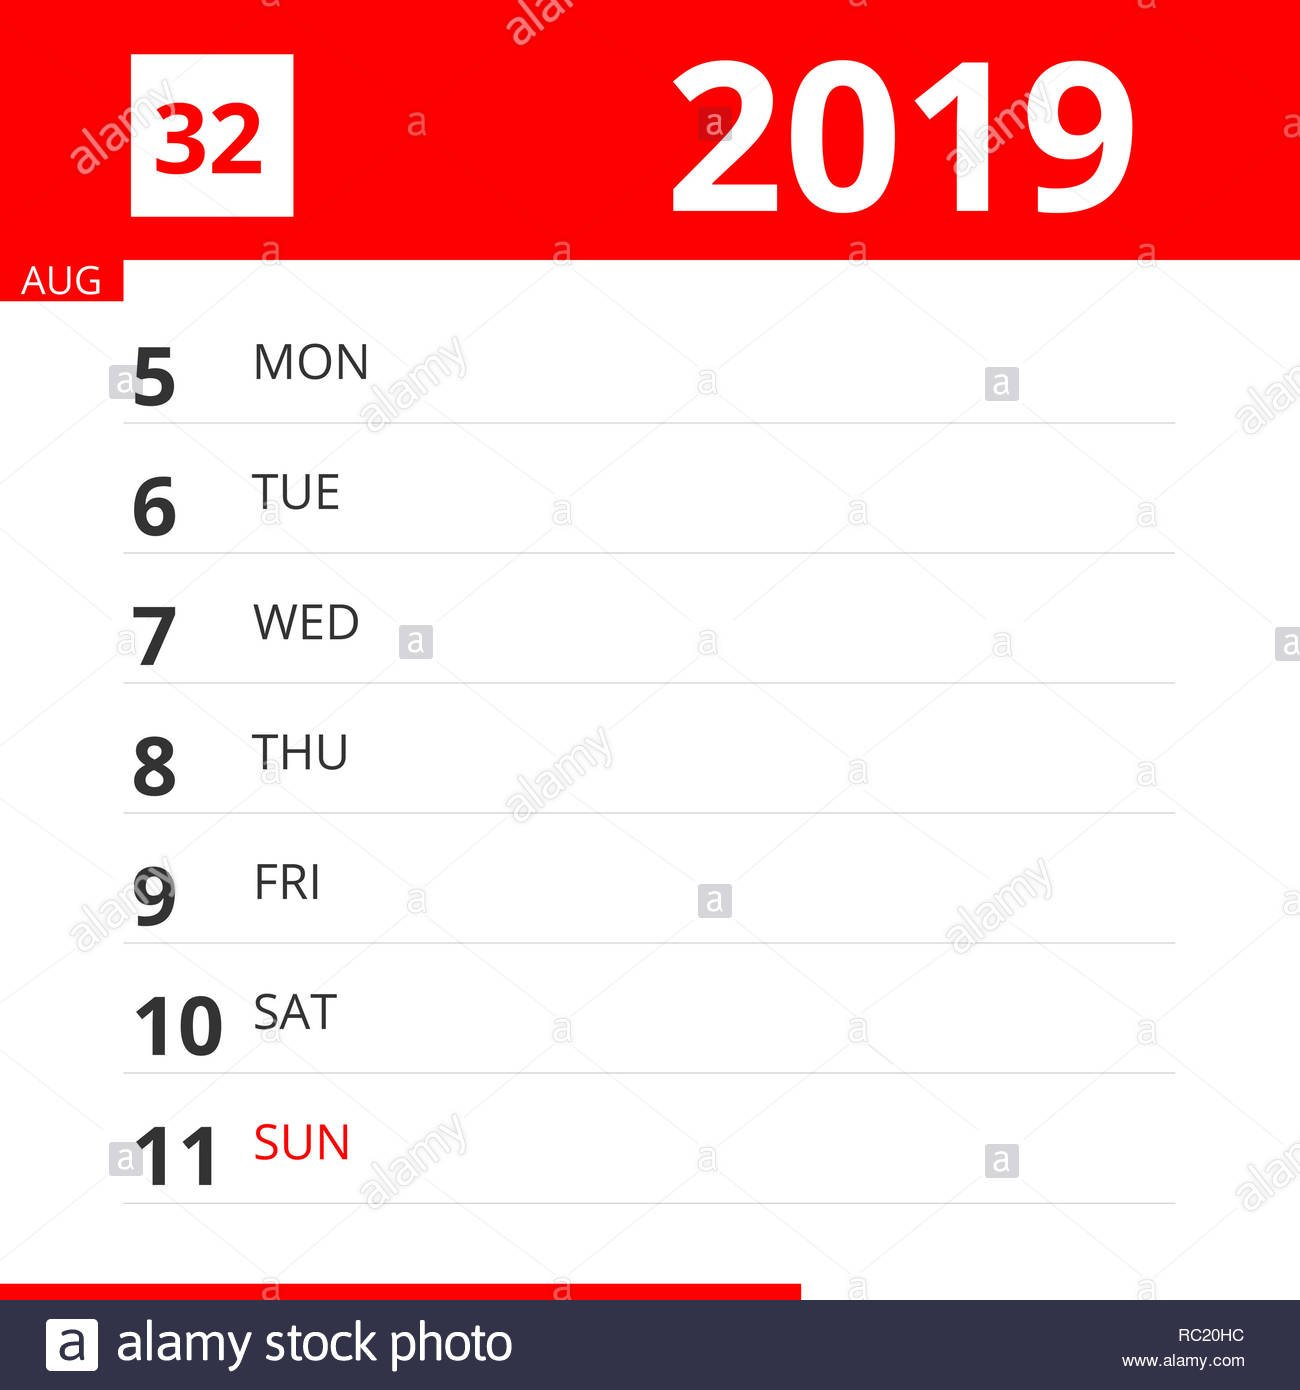 Calendar Planner For Week 32 In 2019, Ends August 11, 2019 Stock Calendar Week 32 2019